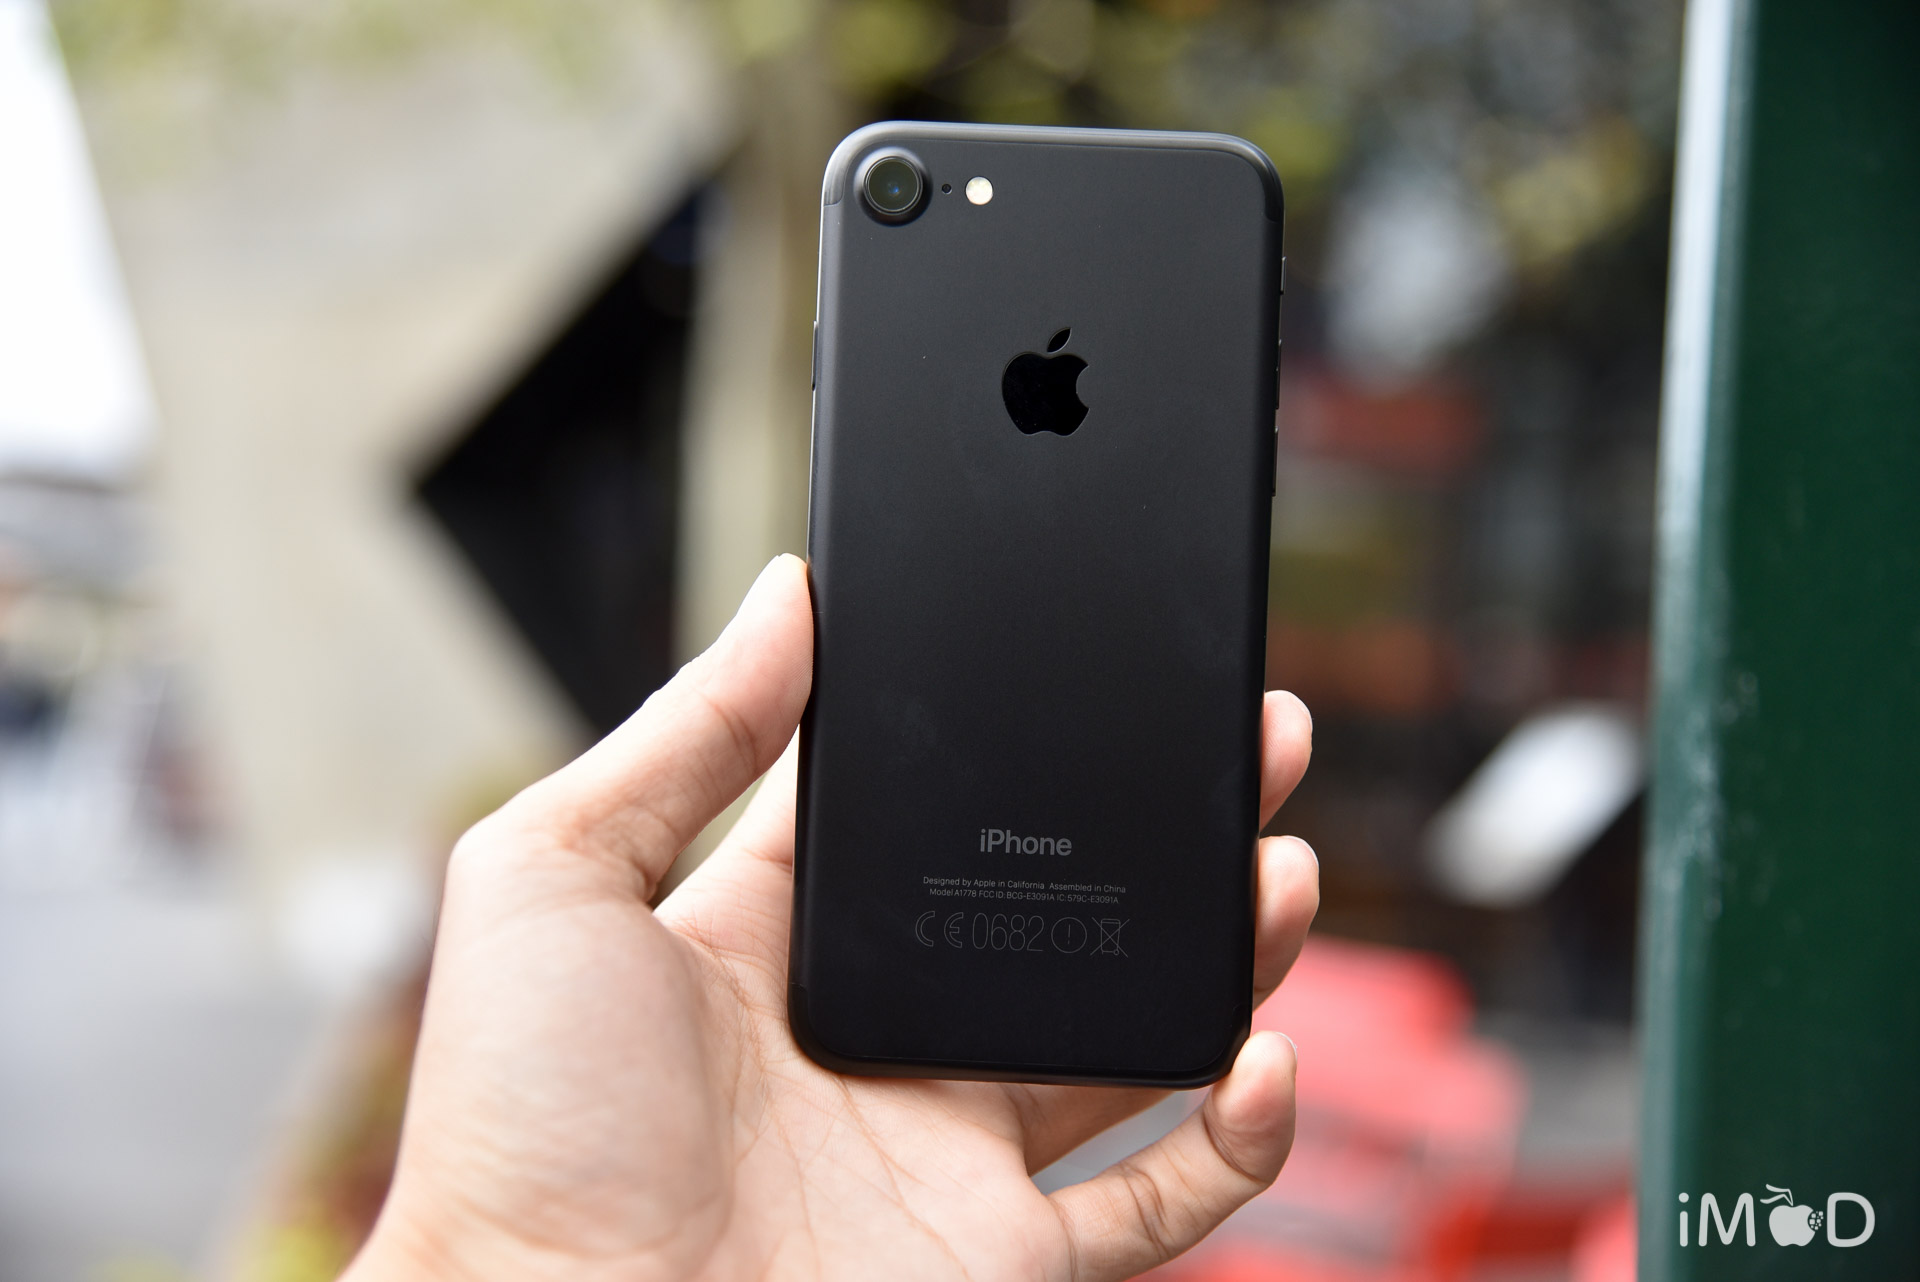 iphone-7-7plus-review-1-7